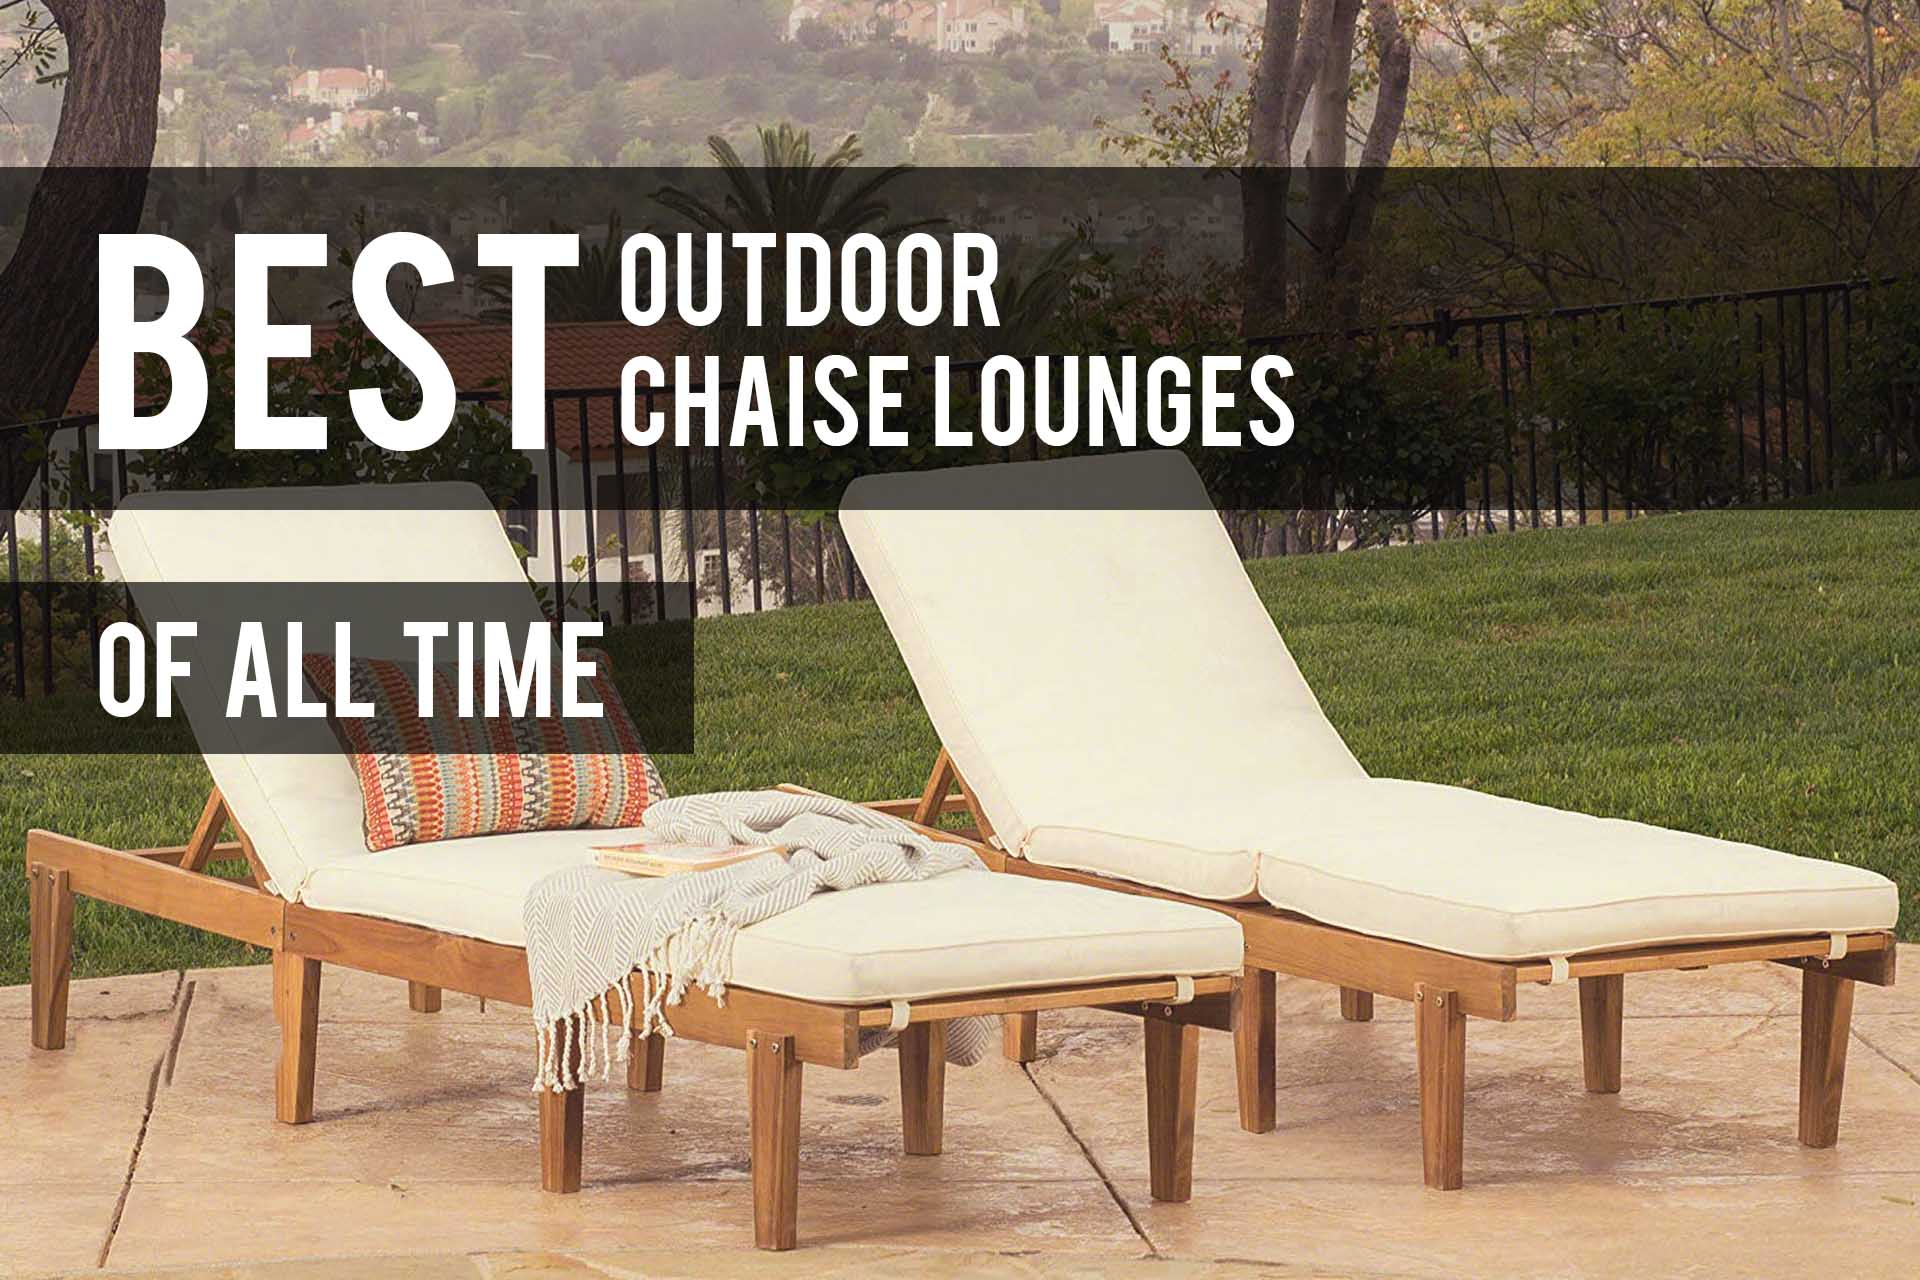 Super Best Outdoor Chaise Lounge Chairs 2019 Reviews The Patio Pro Interior Design Ideas Tzicisoteloinfo